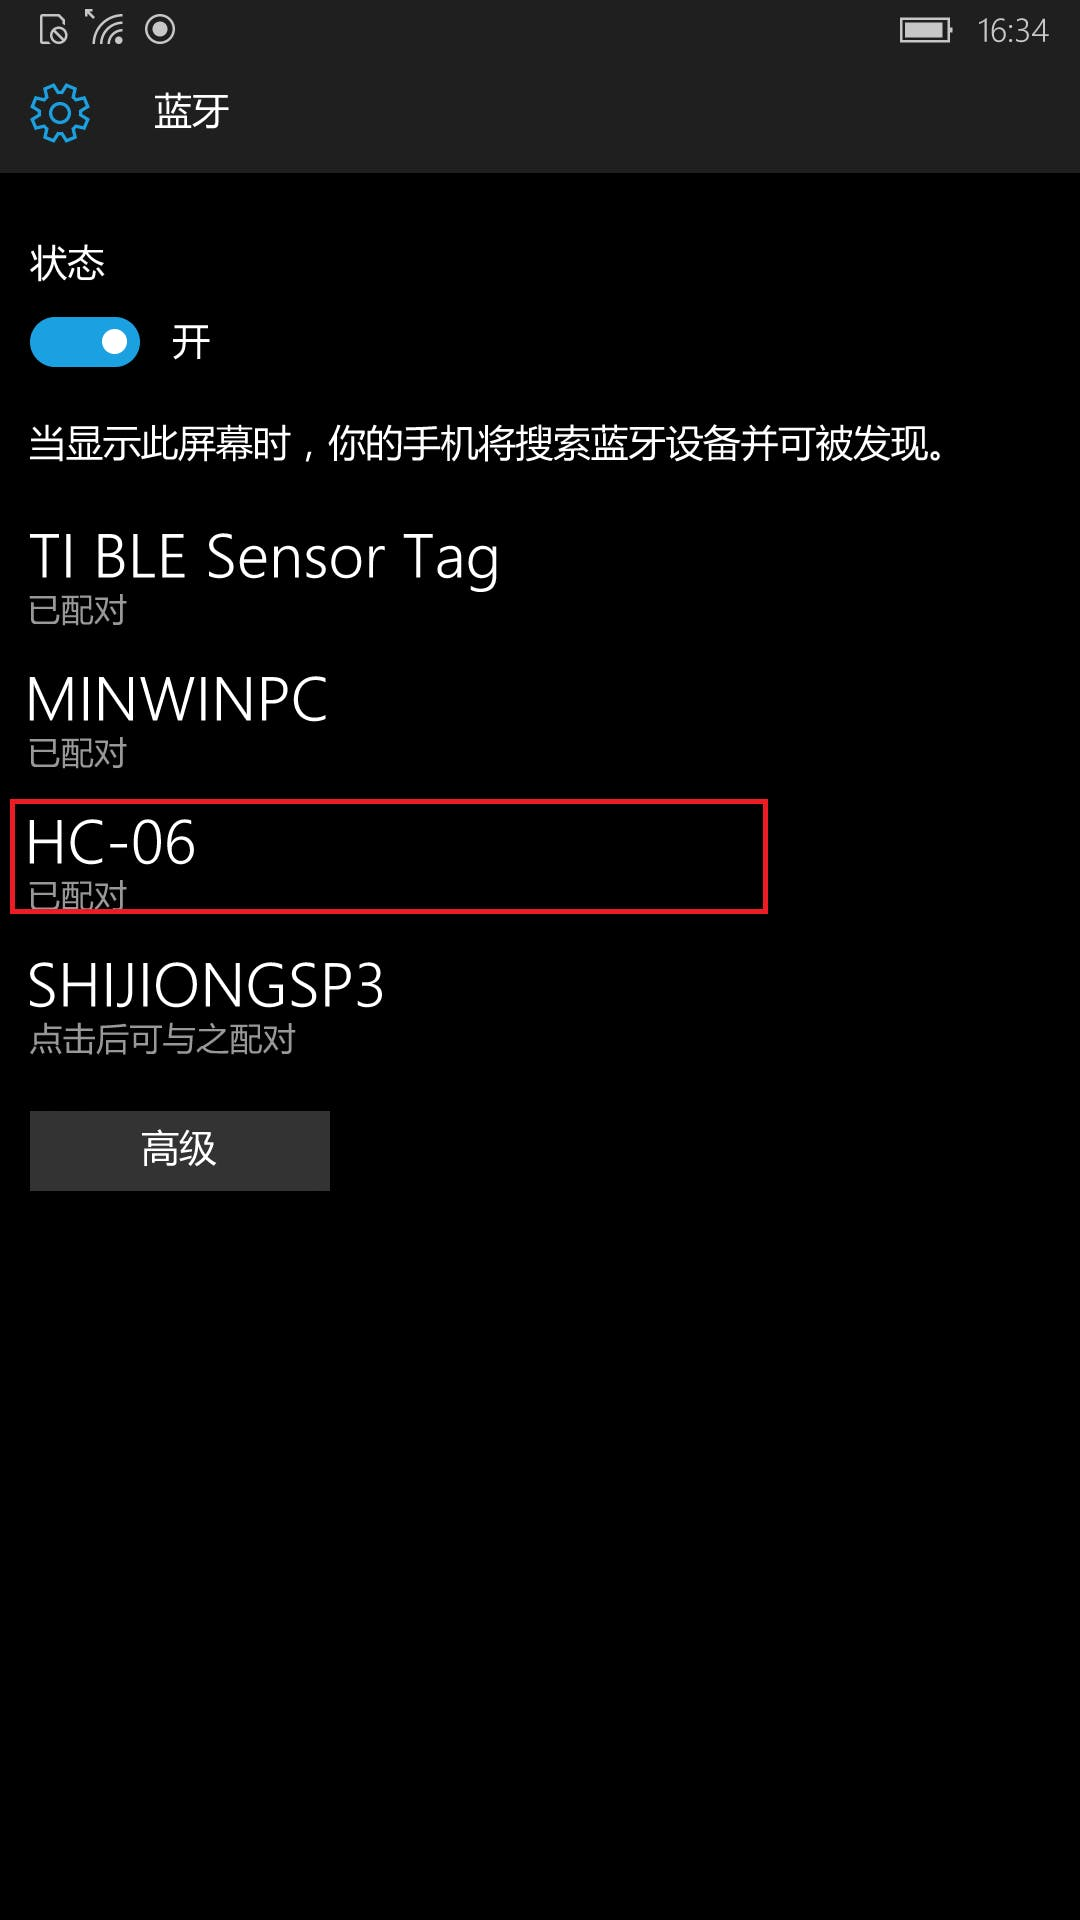 Fig. 7: Bluetooth Pairing for Windows 10 Mobile